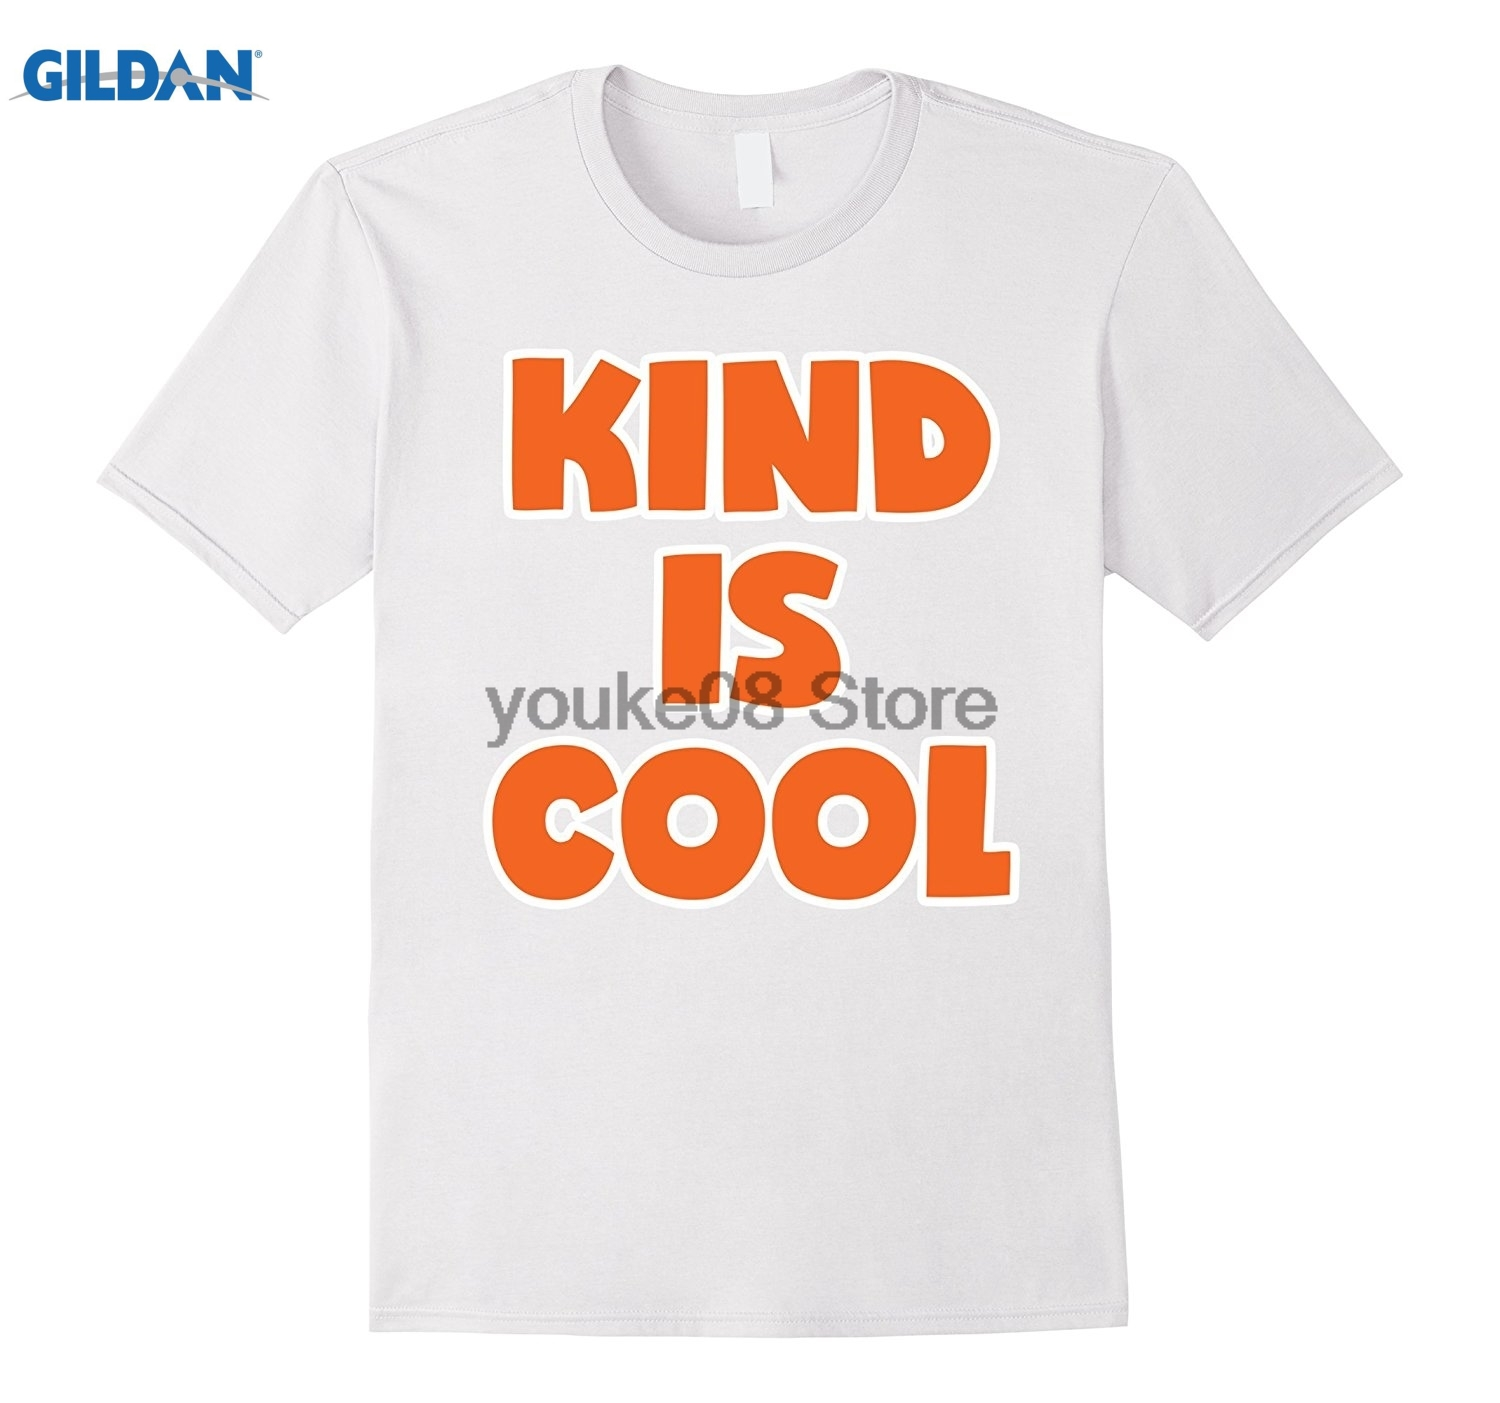 GILDAN 100% Cotton O-neck printed T-shirt Orange Kind Is Cool Anti Bullying Shirt For Girls Boys Kids